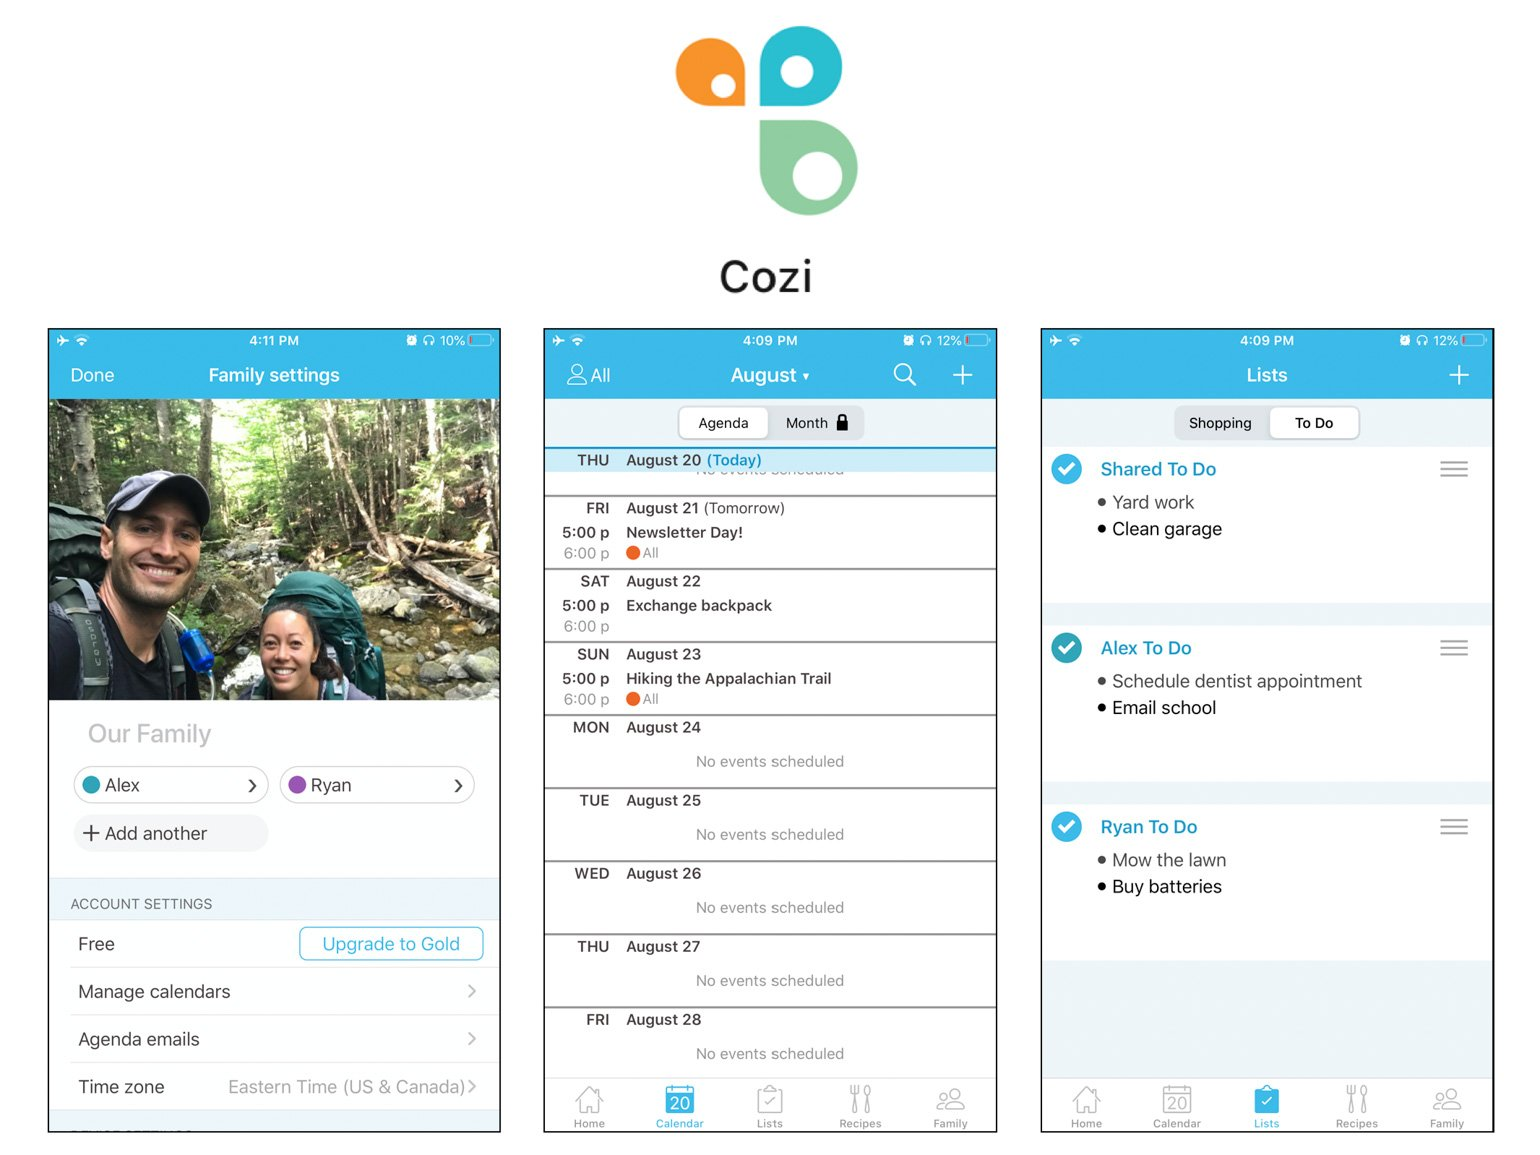 Cozi Best Apps for Married Couples Ryan and Alex Duo Life